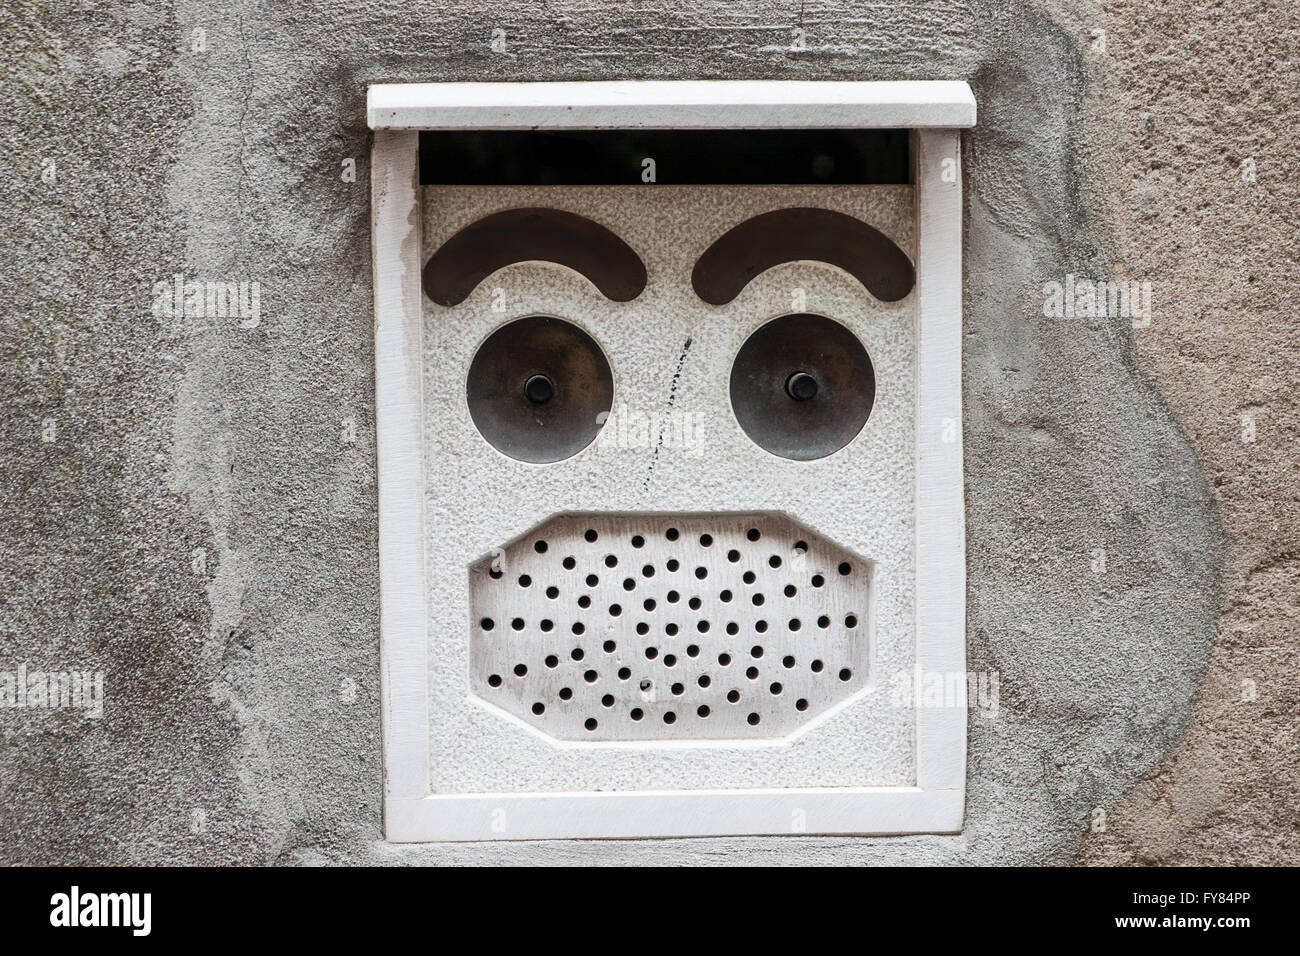 Abstract, looks like face intercom in Venice. - Stock Image